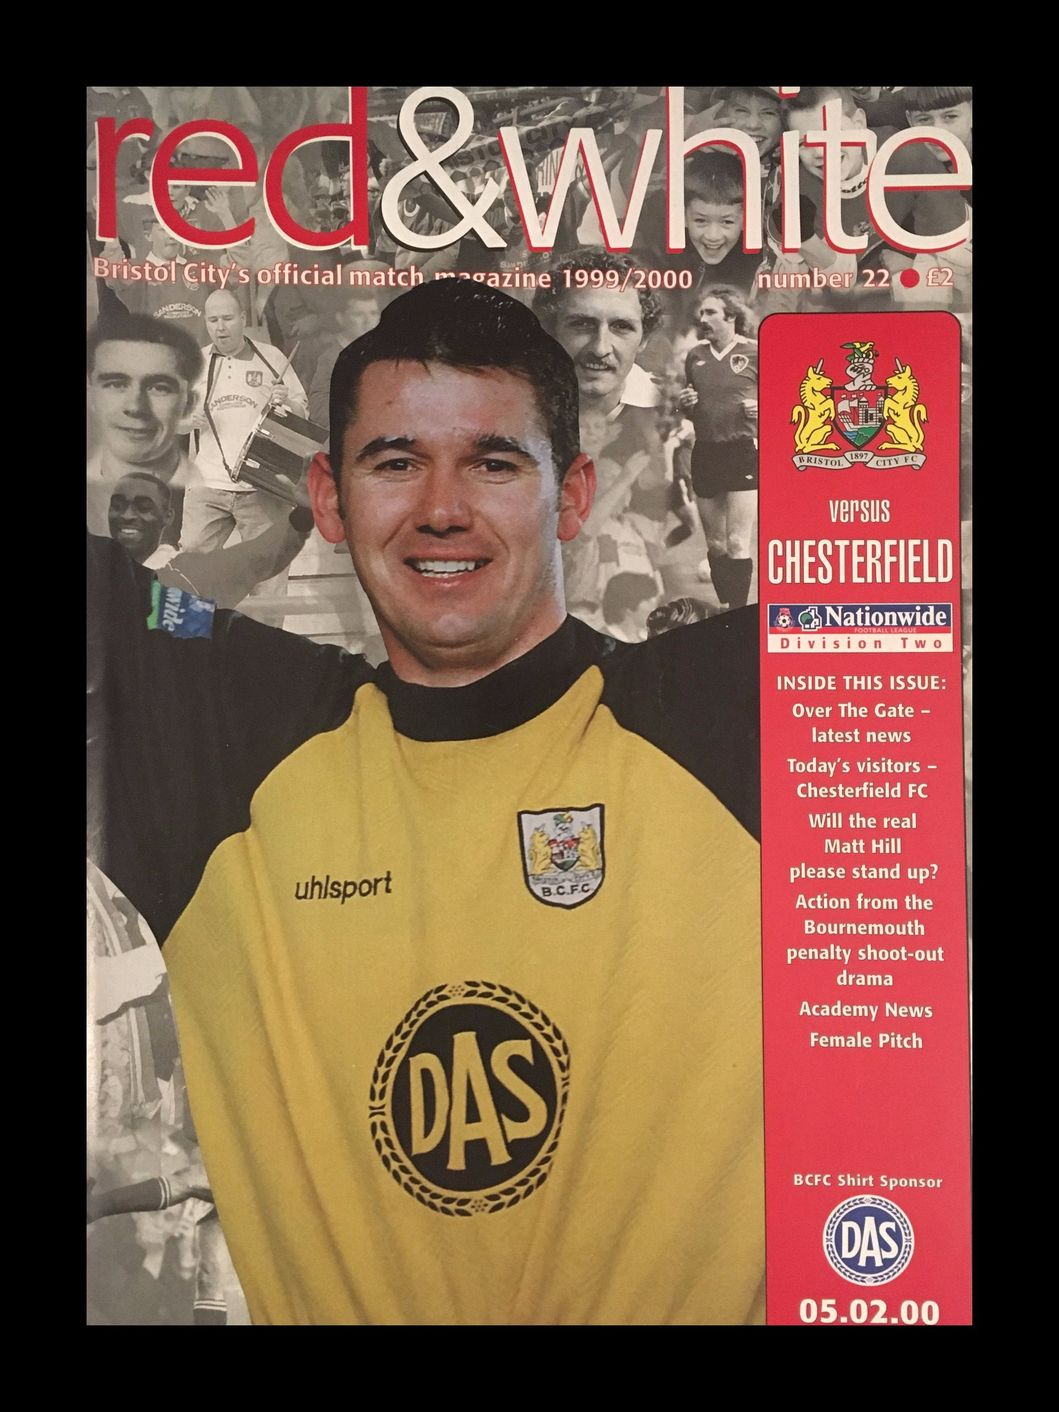 Bristol City v Chesterfield 05-02-2000 Programme